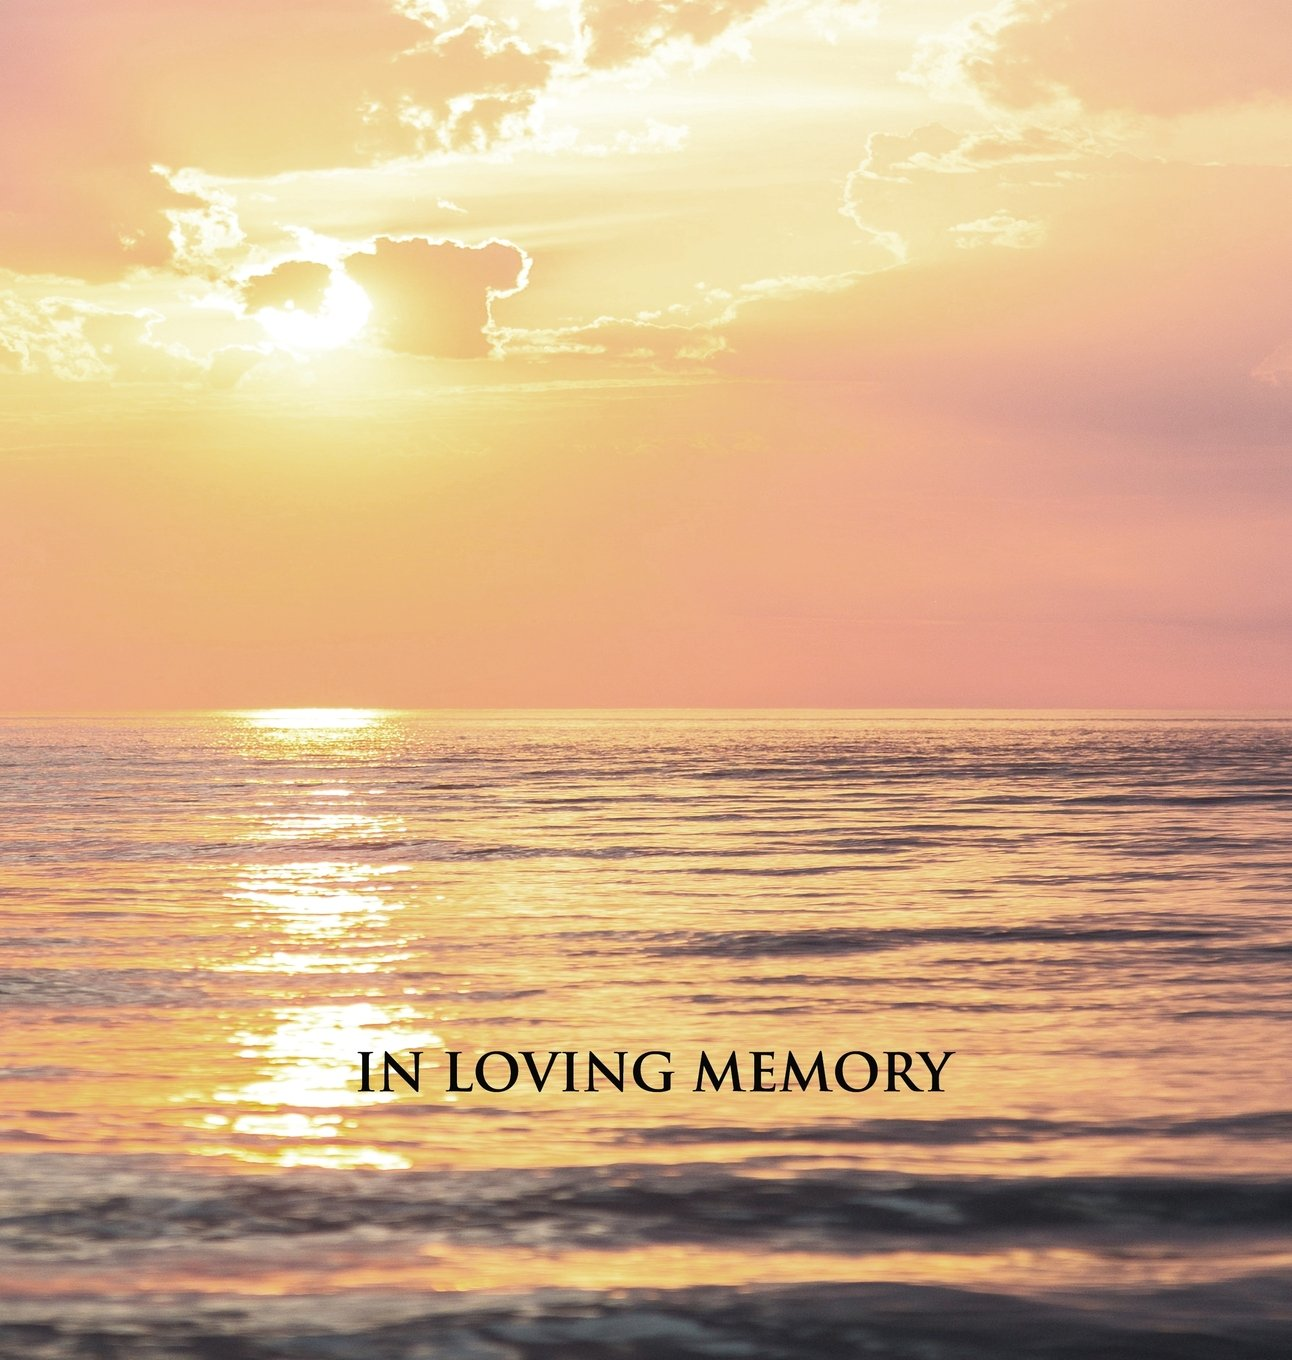 ''in Loving Memory'' Funeral Guest Book, Memorial Guest Book, Condolence Book, Remembrance Book for Funerals or Wake, Memorial Service Guest Book: Hardcover. a Lasting Keepsake for the Family.